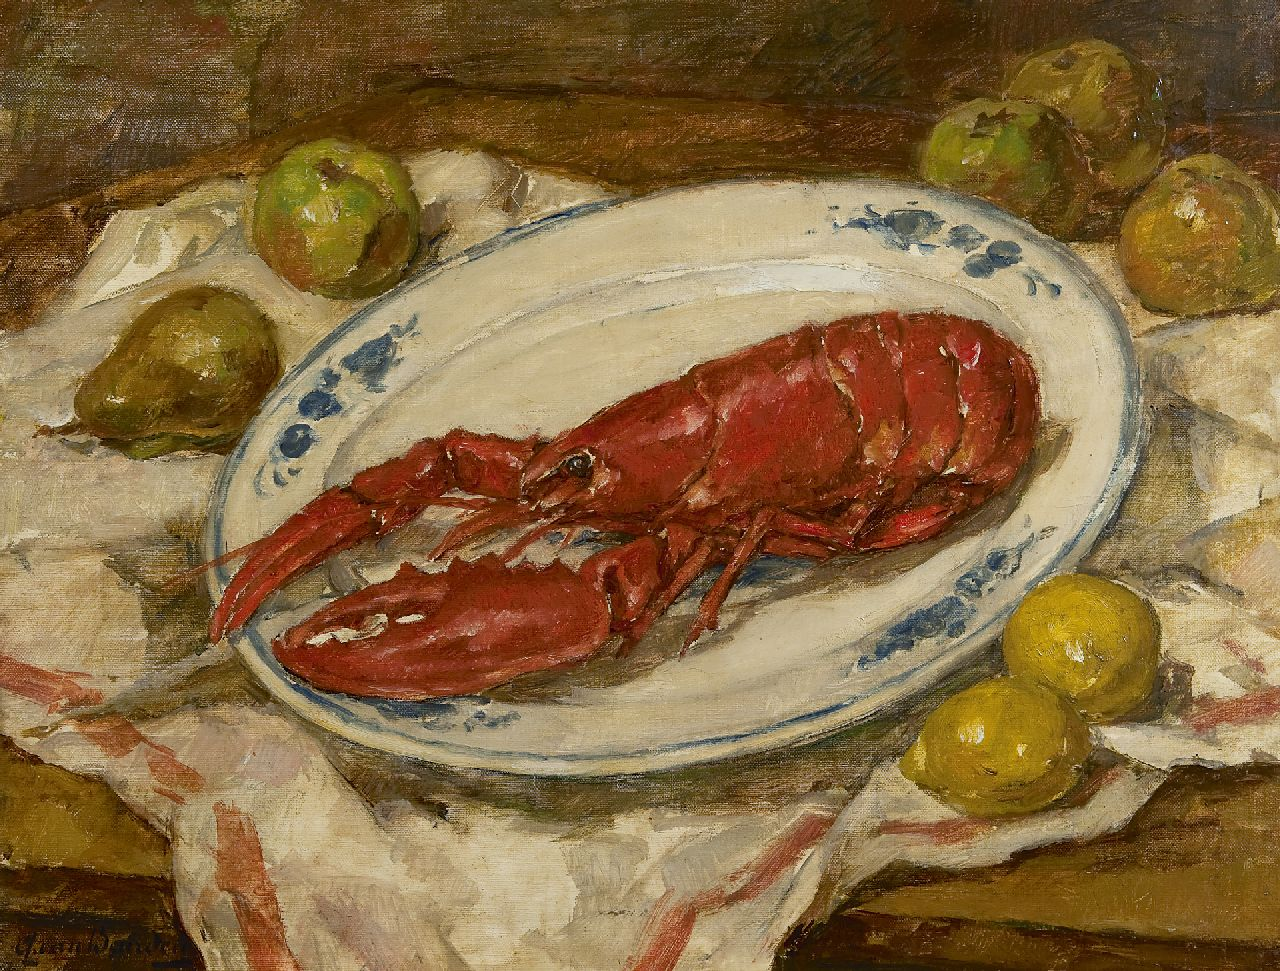 Alphonse van Beurden jr. | Still life with lobster, pears and lemons, oil on canvas, 52.0 x 67.2 cm, signed l.l.